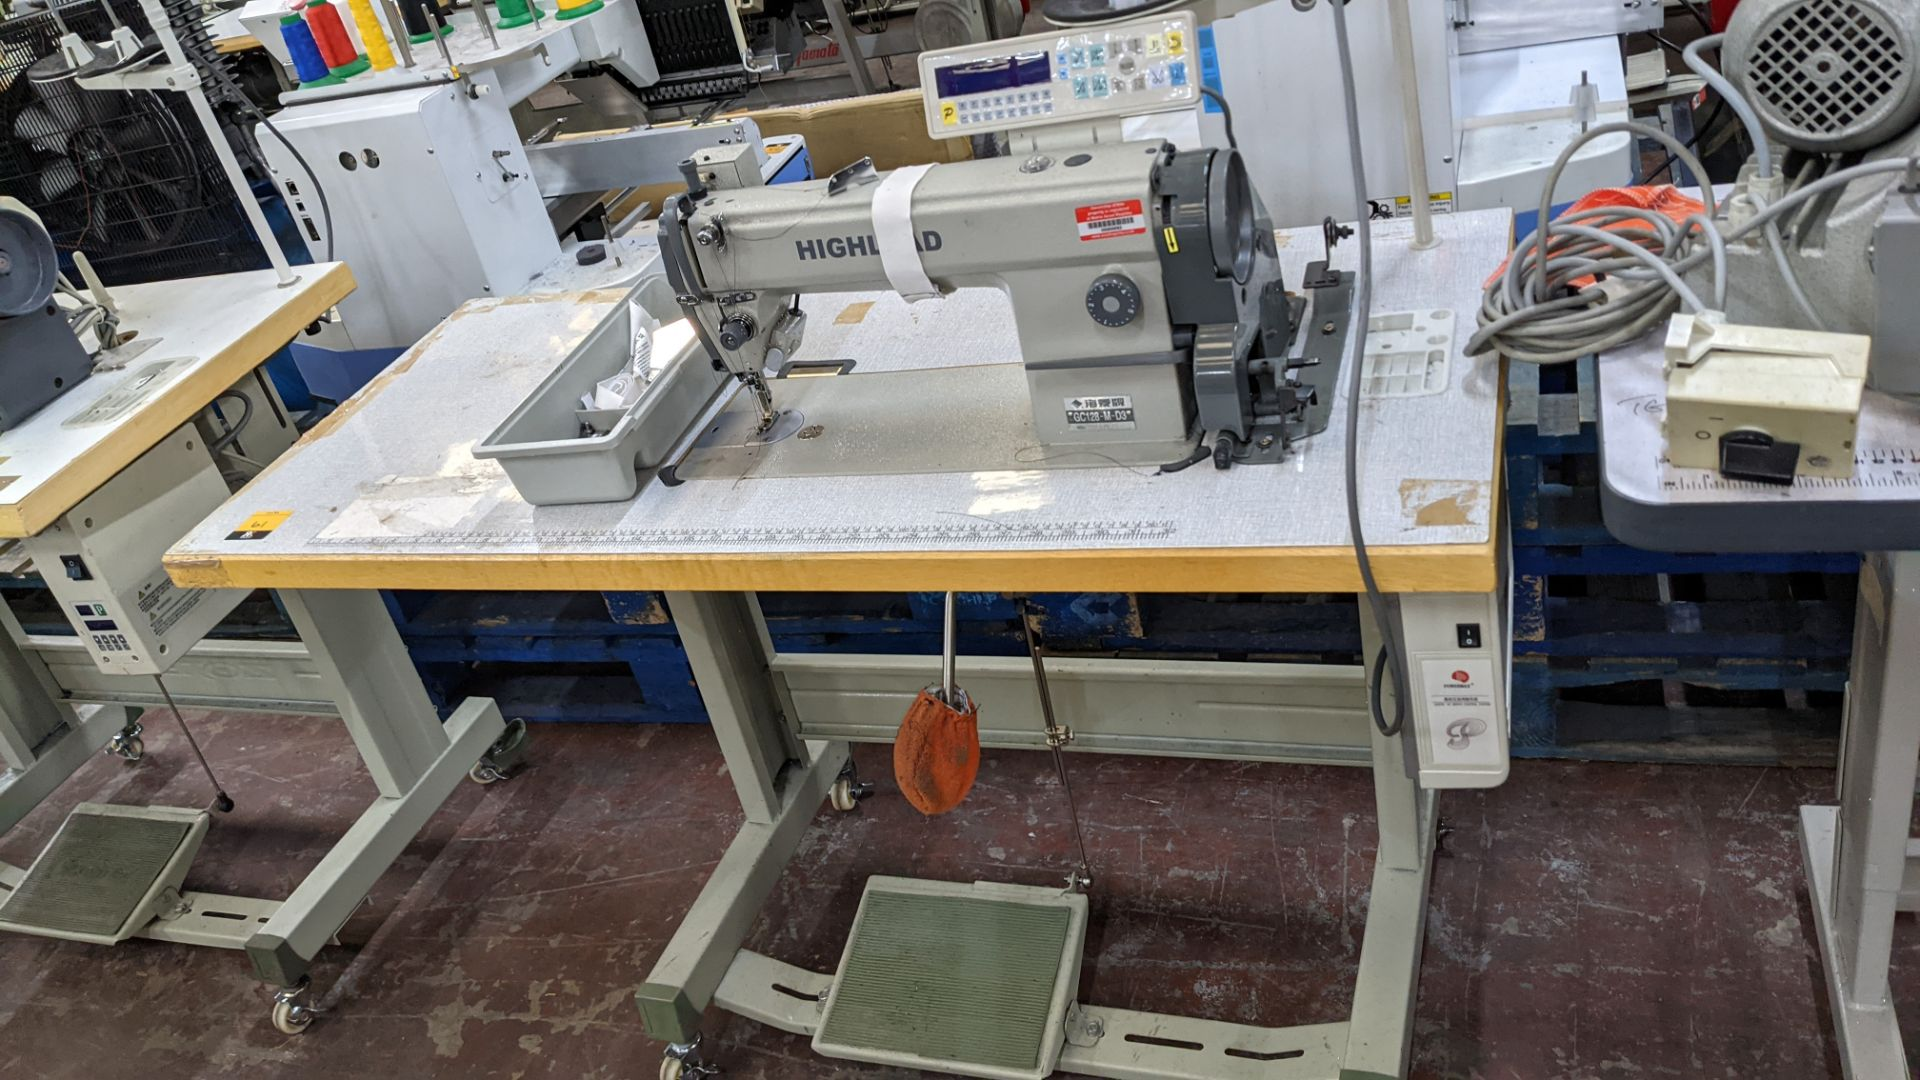 Highlead model GC128-M-D3 sewing machine